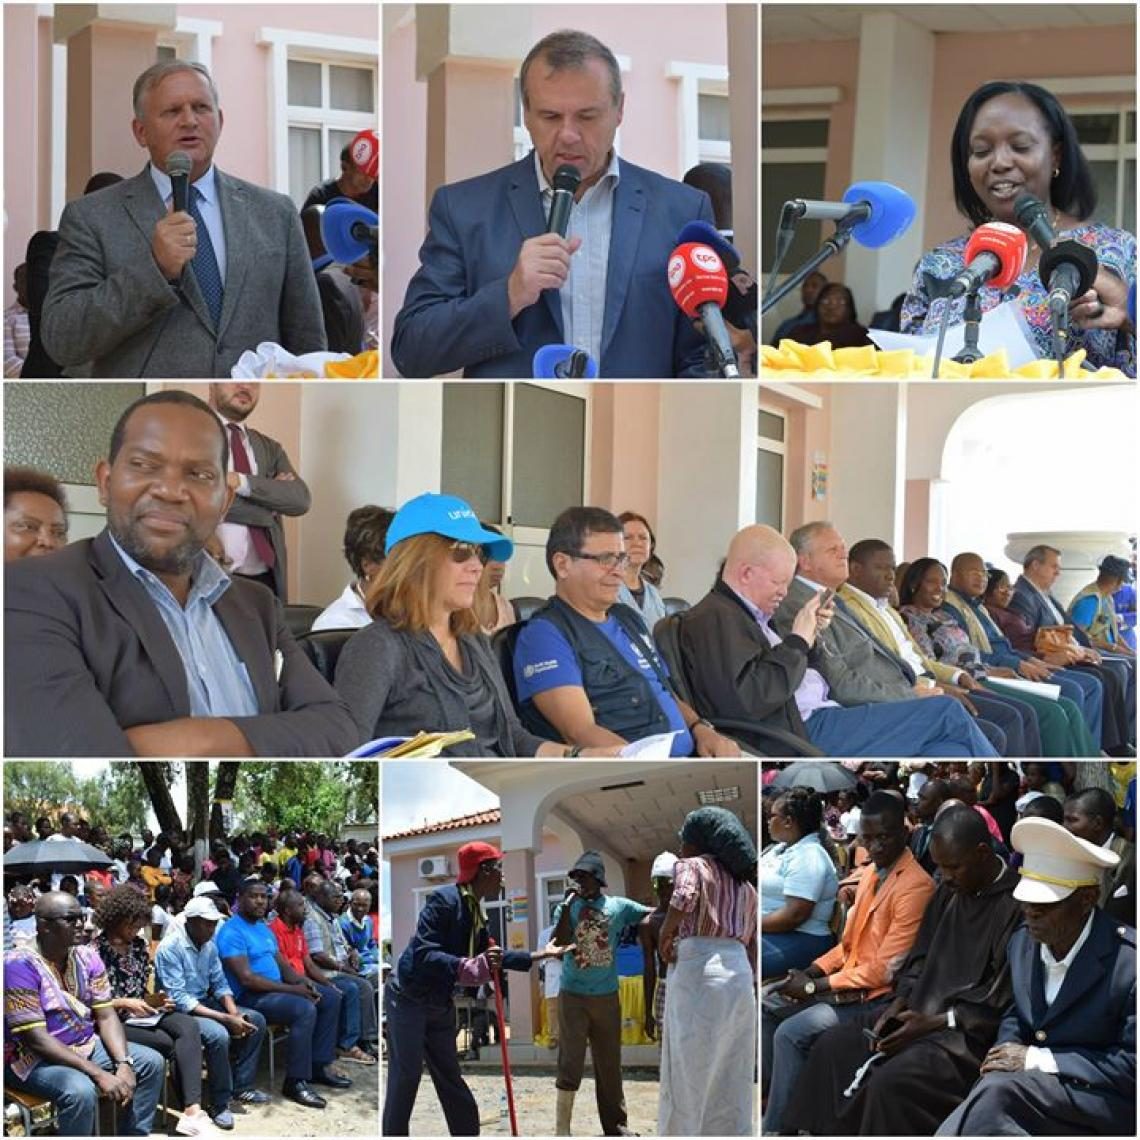 Compendium of pictures of the launch ceremony of yellow fever's campaign in Samba Caju, Kwanza Norte, November 2017